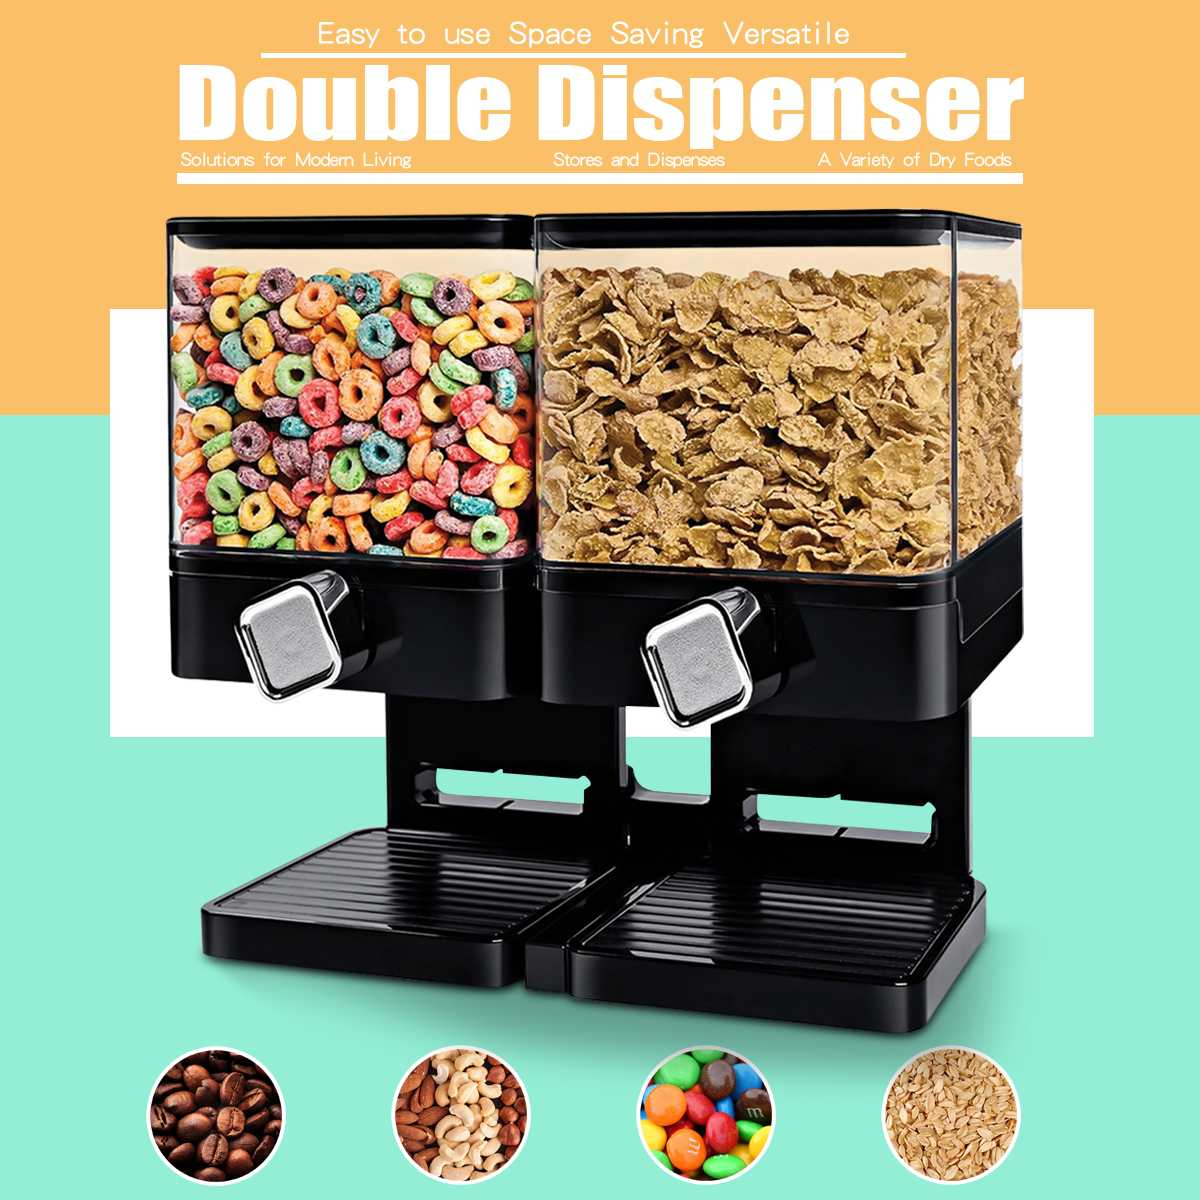 Double Cereal Dispenser Storage Container Dry Food Snack Kitchen Canister Fresh for Home Shop Kitchen Storage Food BottleDouble Cereal Dispenser Storage Container Dry Food Snack Kitchen Canister Fresh for Home Shop Kitchen Storage Food Bottle